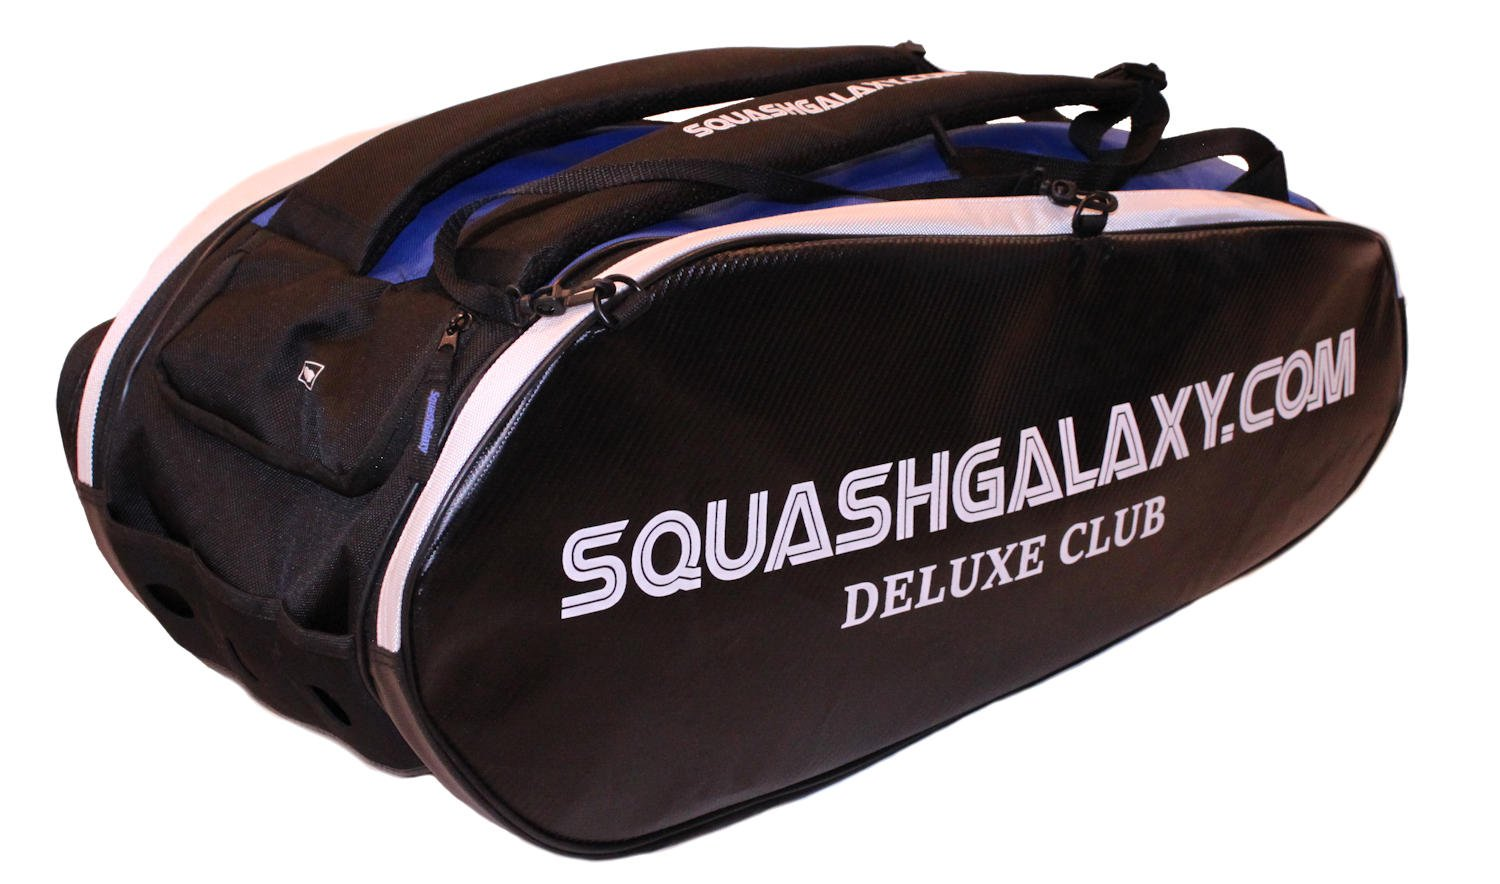 Squash Galaxy Deluxe Club Squash Bag (Ultimate Value)